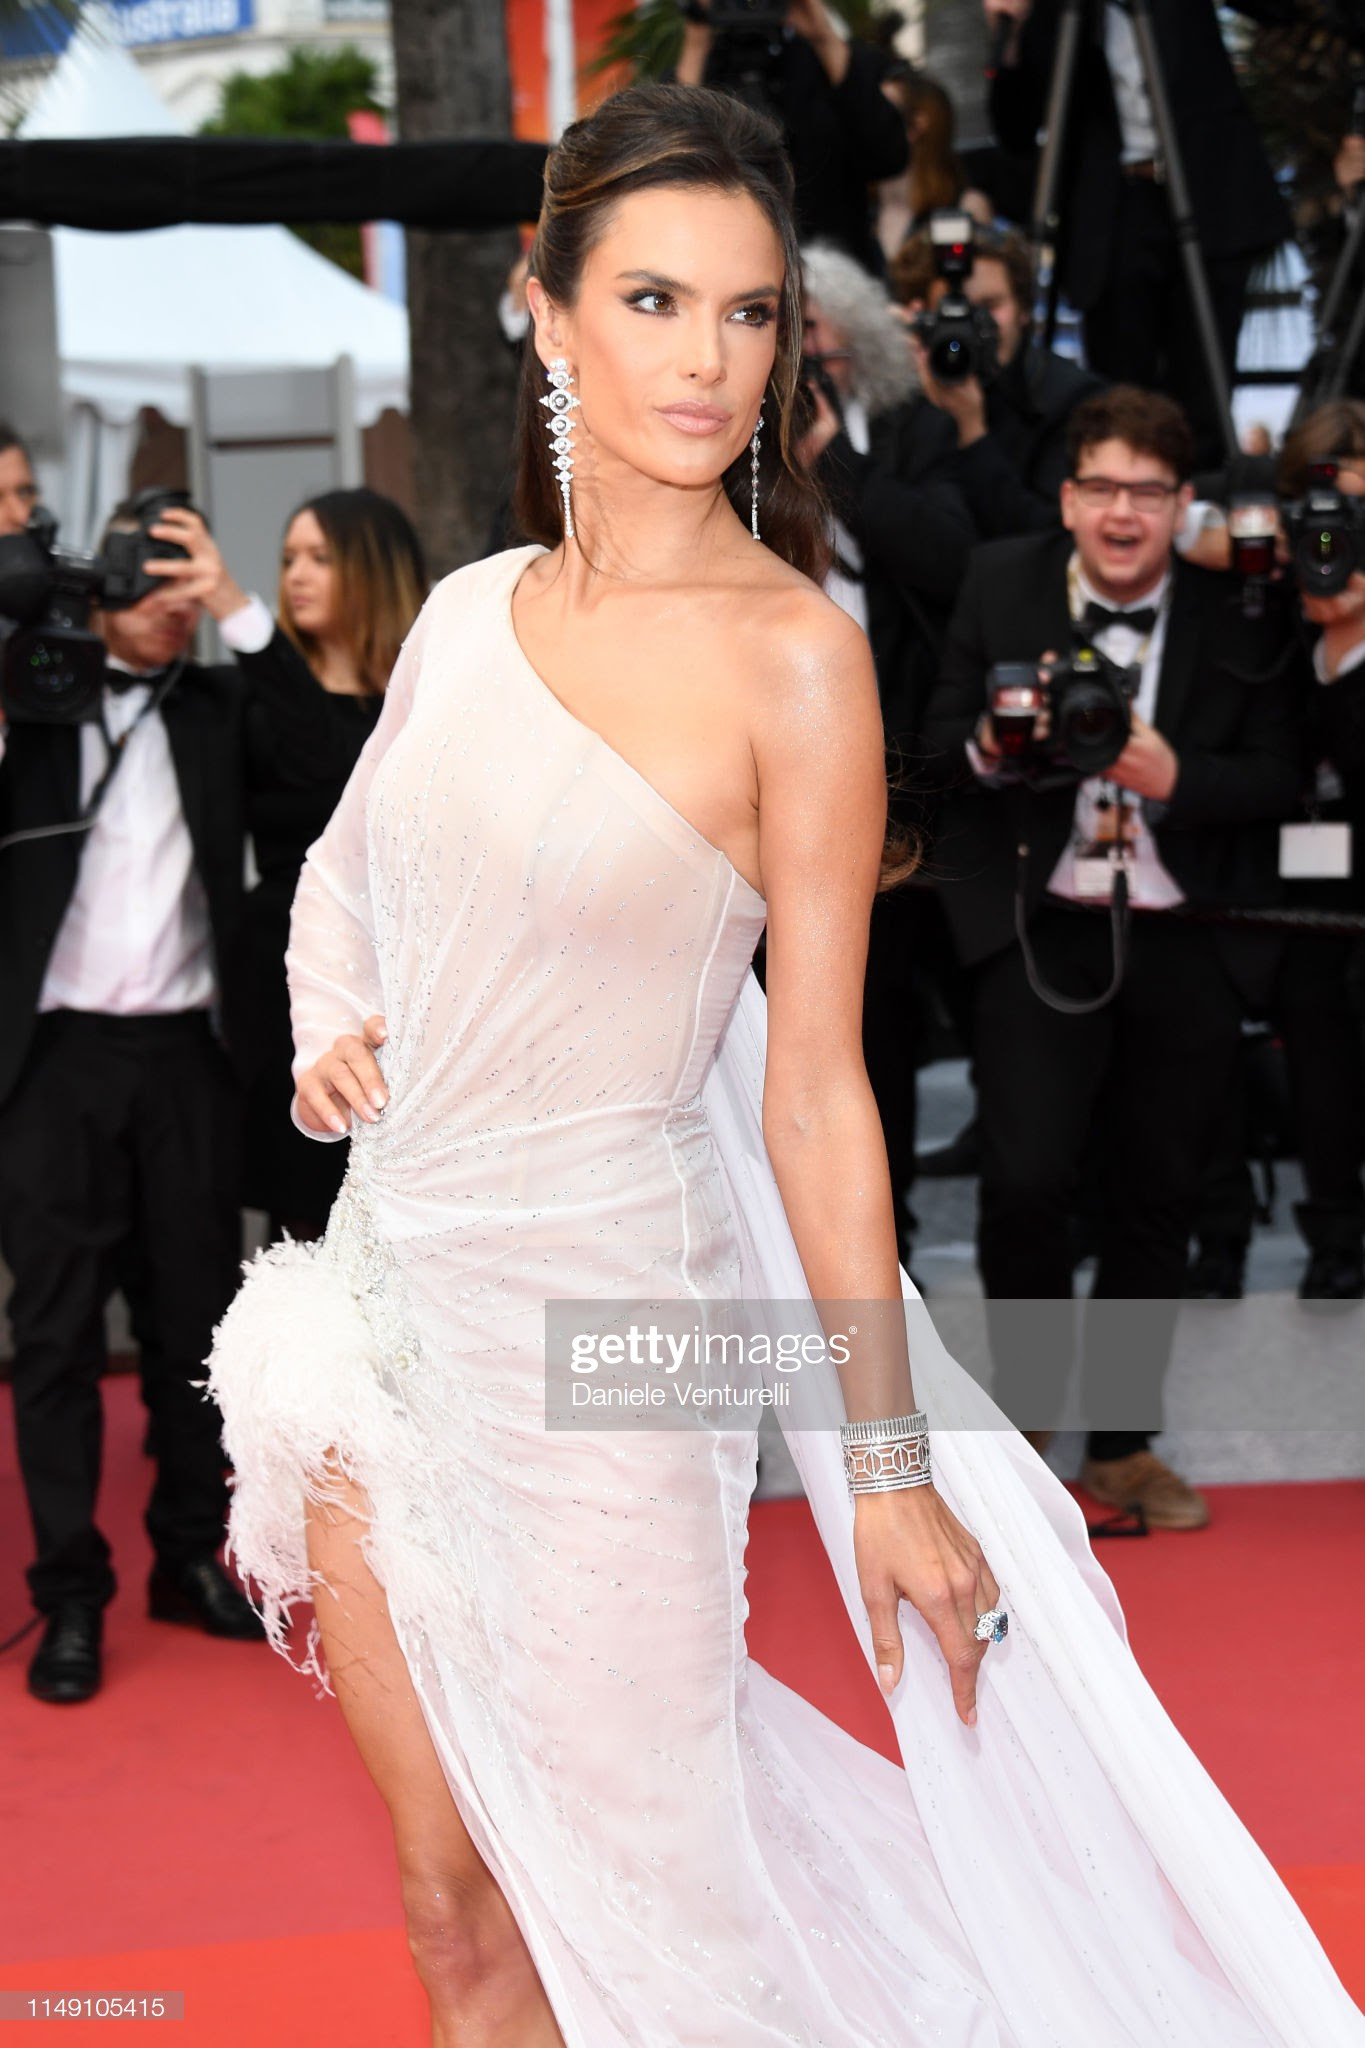 """loat my nhan sieu vong 1 lam """"nao loan"""" tham do cannes 2019 hinh anh 4"""